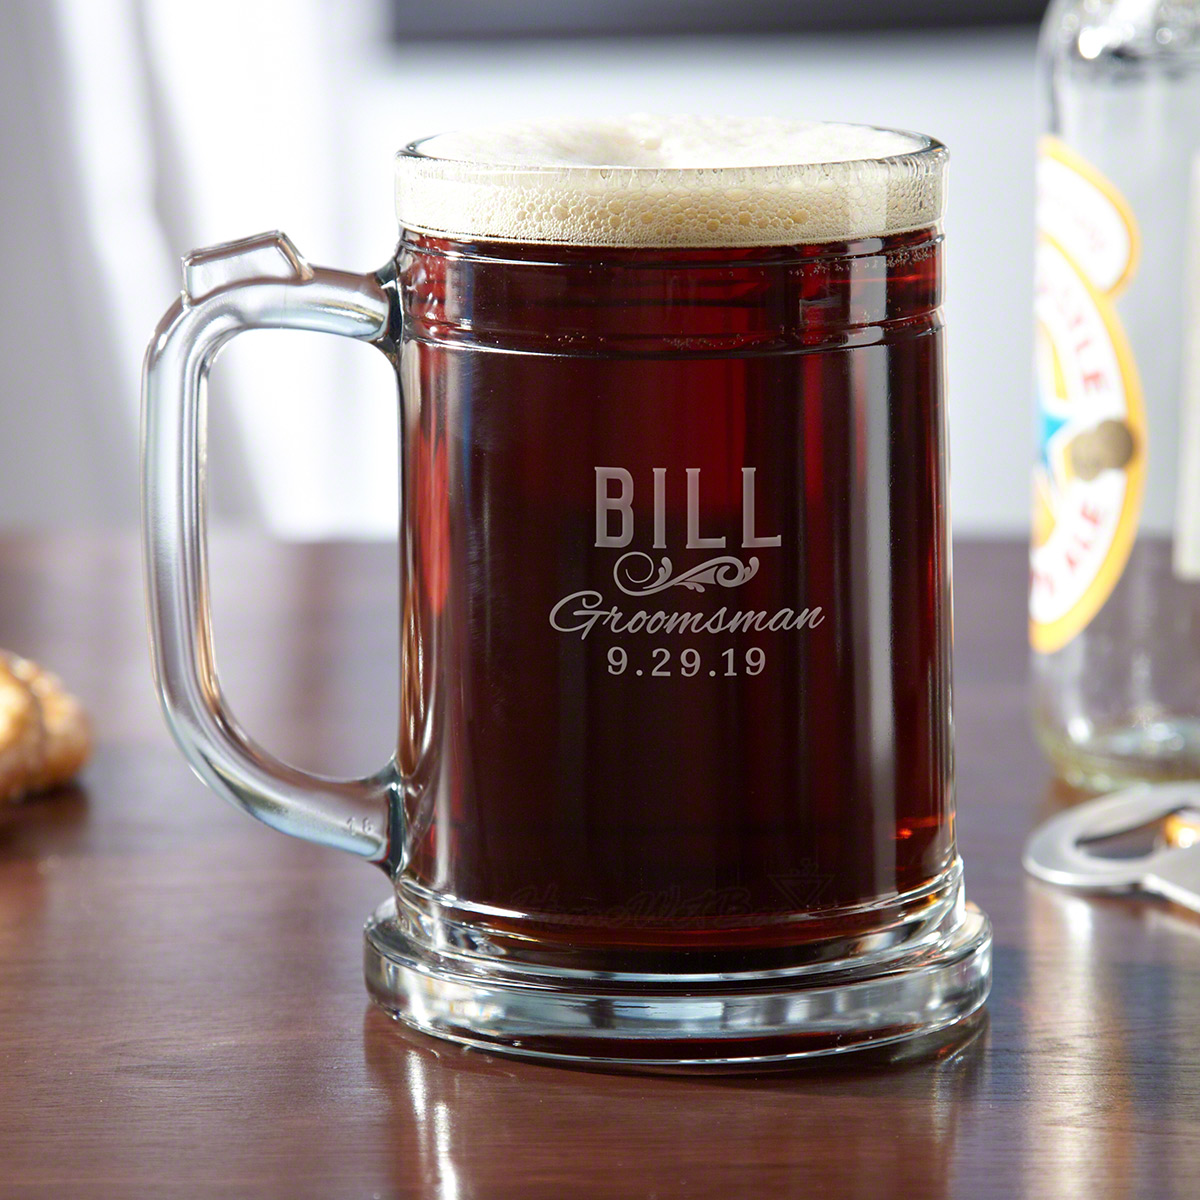 When it comes time to toast the happy new couple, the occasion calls for our Classic Groomsman engraved pint mugs. The ideal gift for bridesmaids, groomsmen, and even the best man, these clear glass beer steins are personalized with the name, title, and d #mug